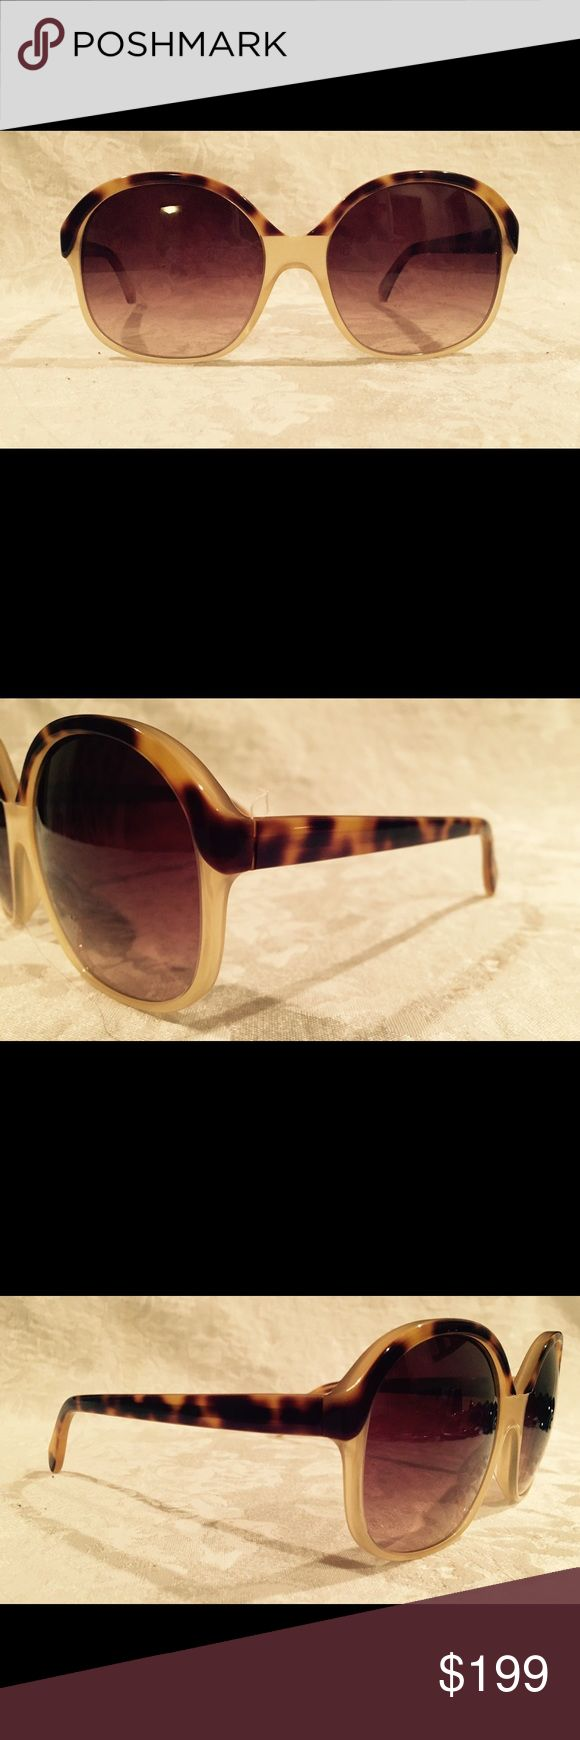 Oliver Peoples women's sunglasses. NEW! Tortoiseshell top of frame and cream-colored lower half. Very elegant oversized movie star sunglasses. NEW!!! Oliver Peoples Accessories Sunglasses